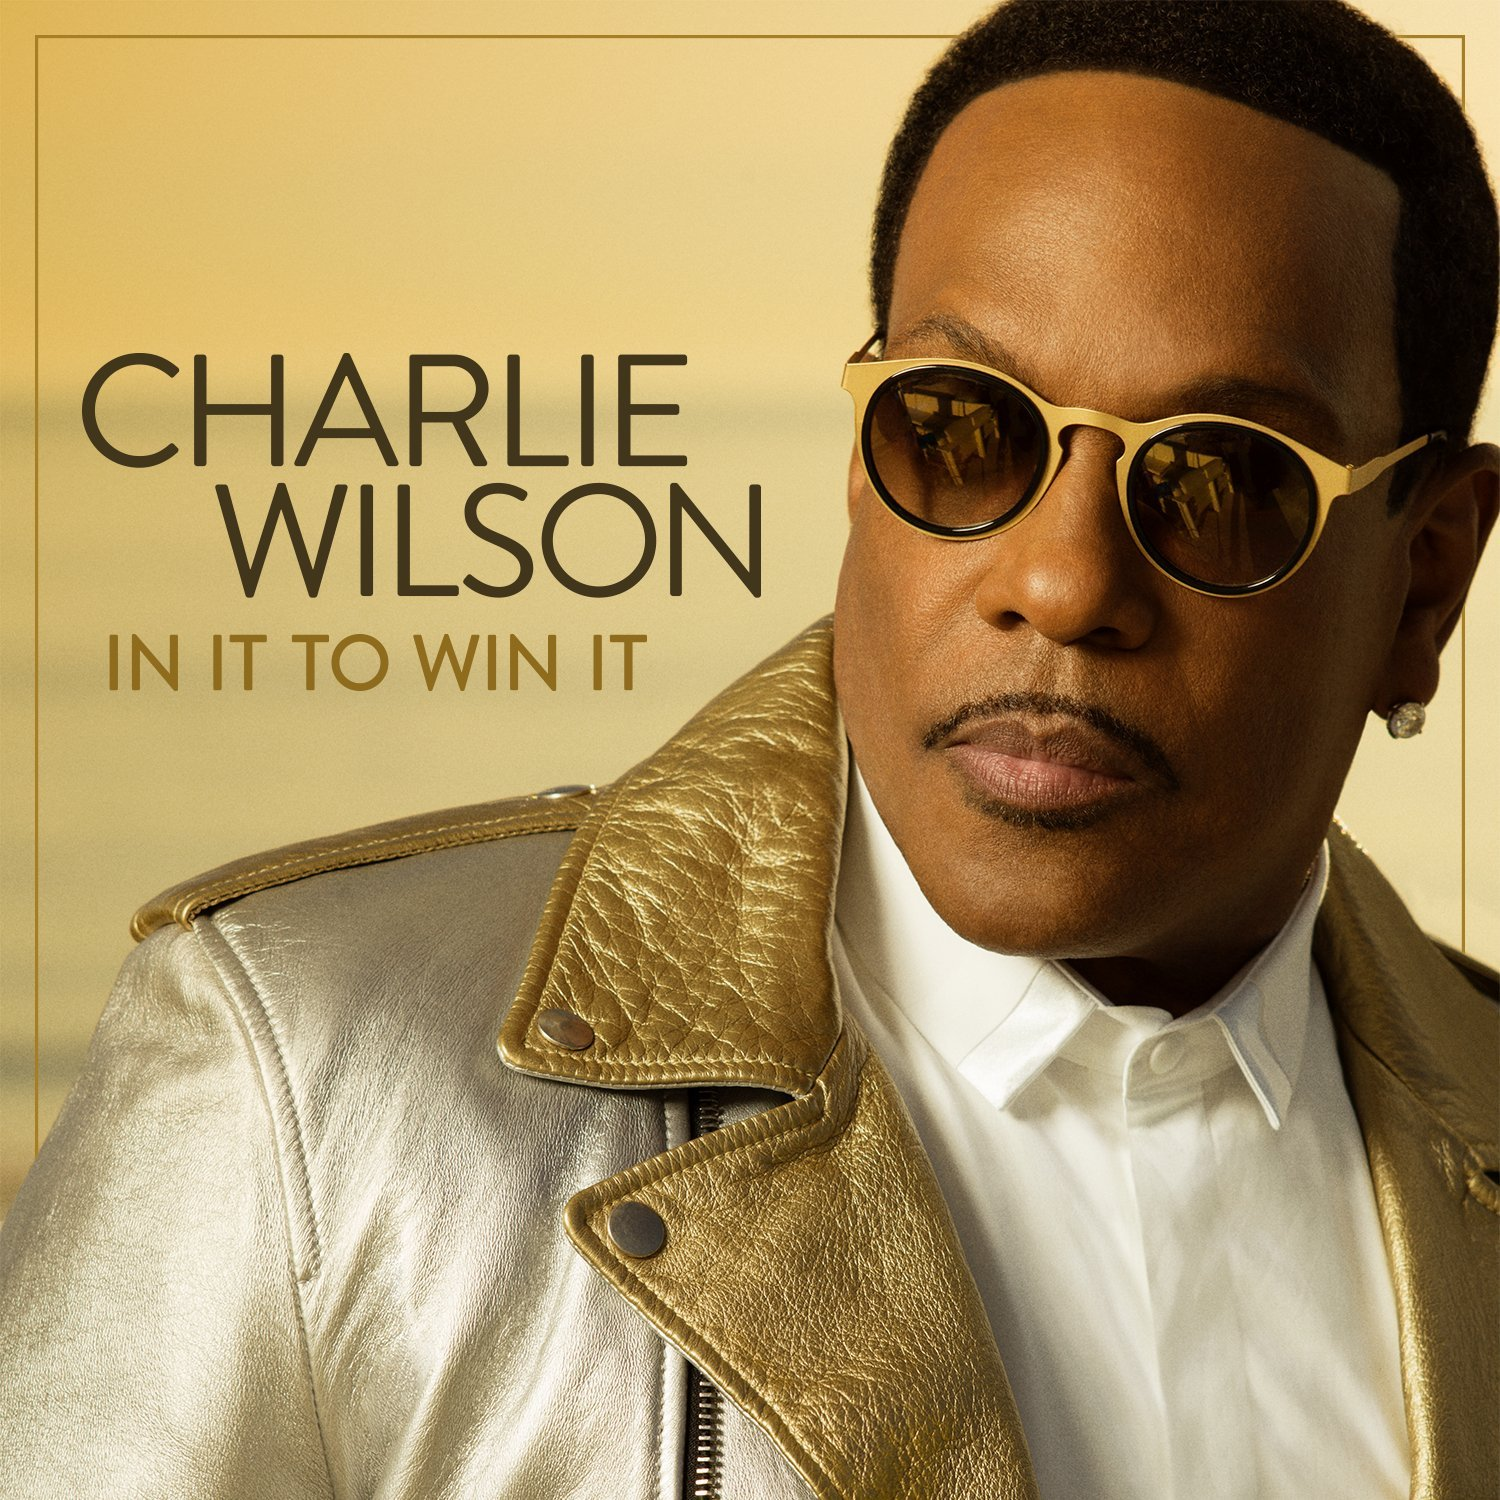 Charlie Wilson Wins on 'In It to Win It'